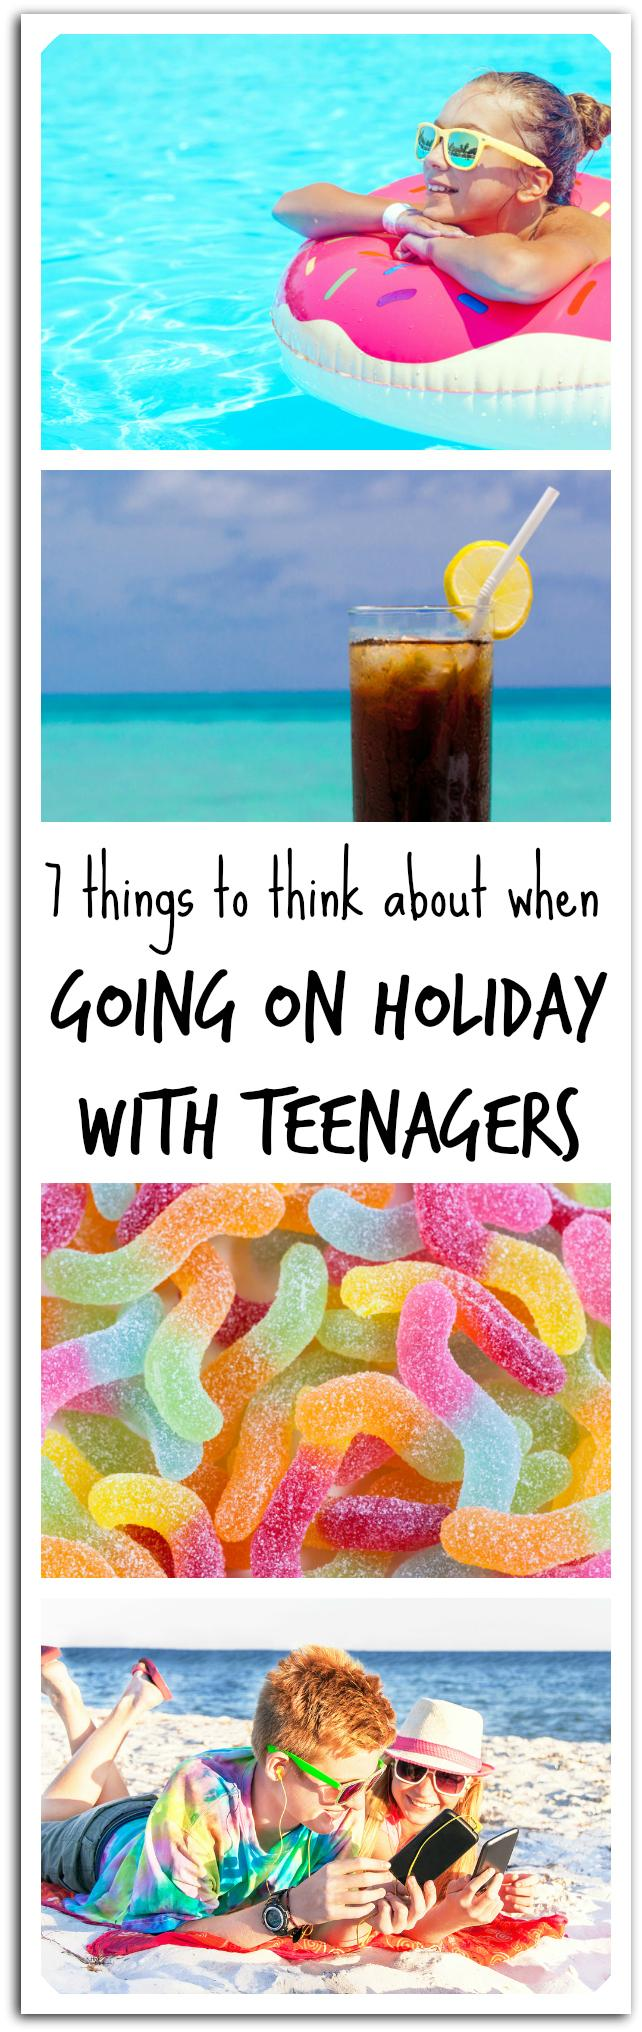 tips for holidays with teenagers